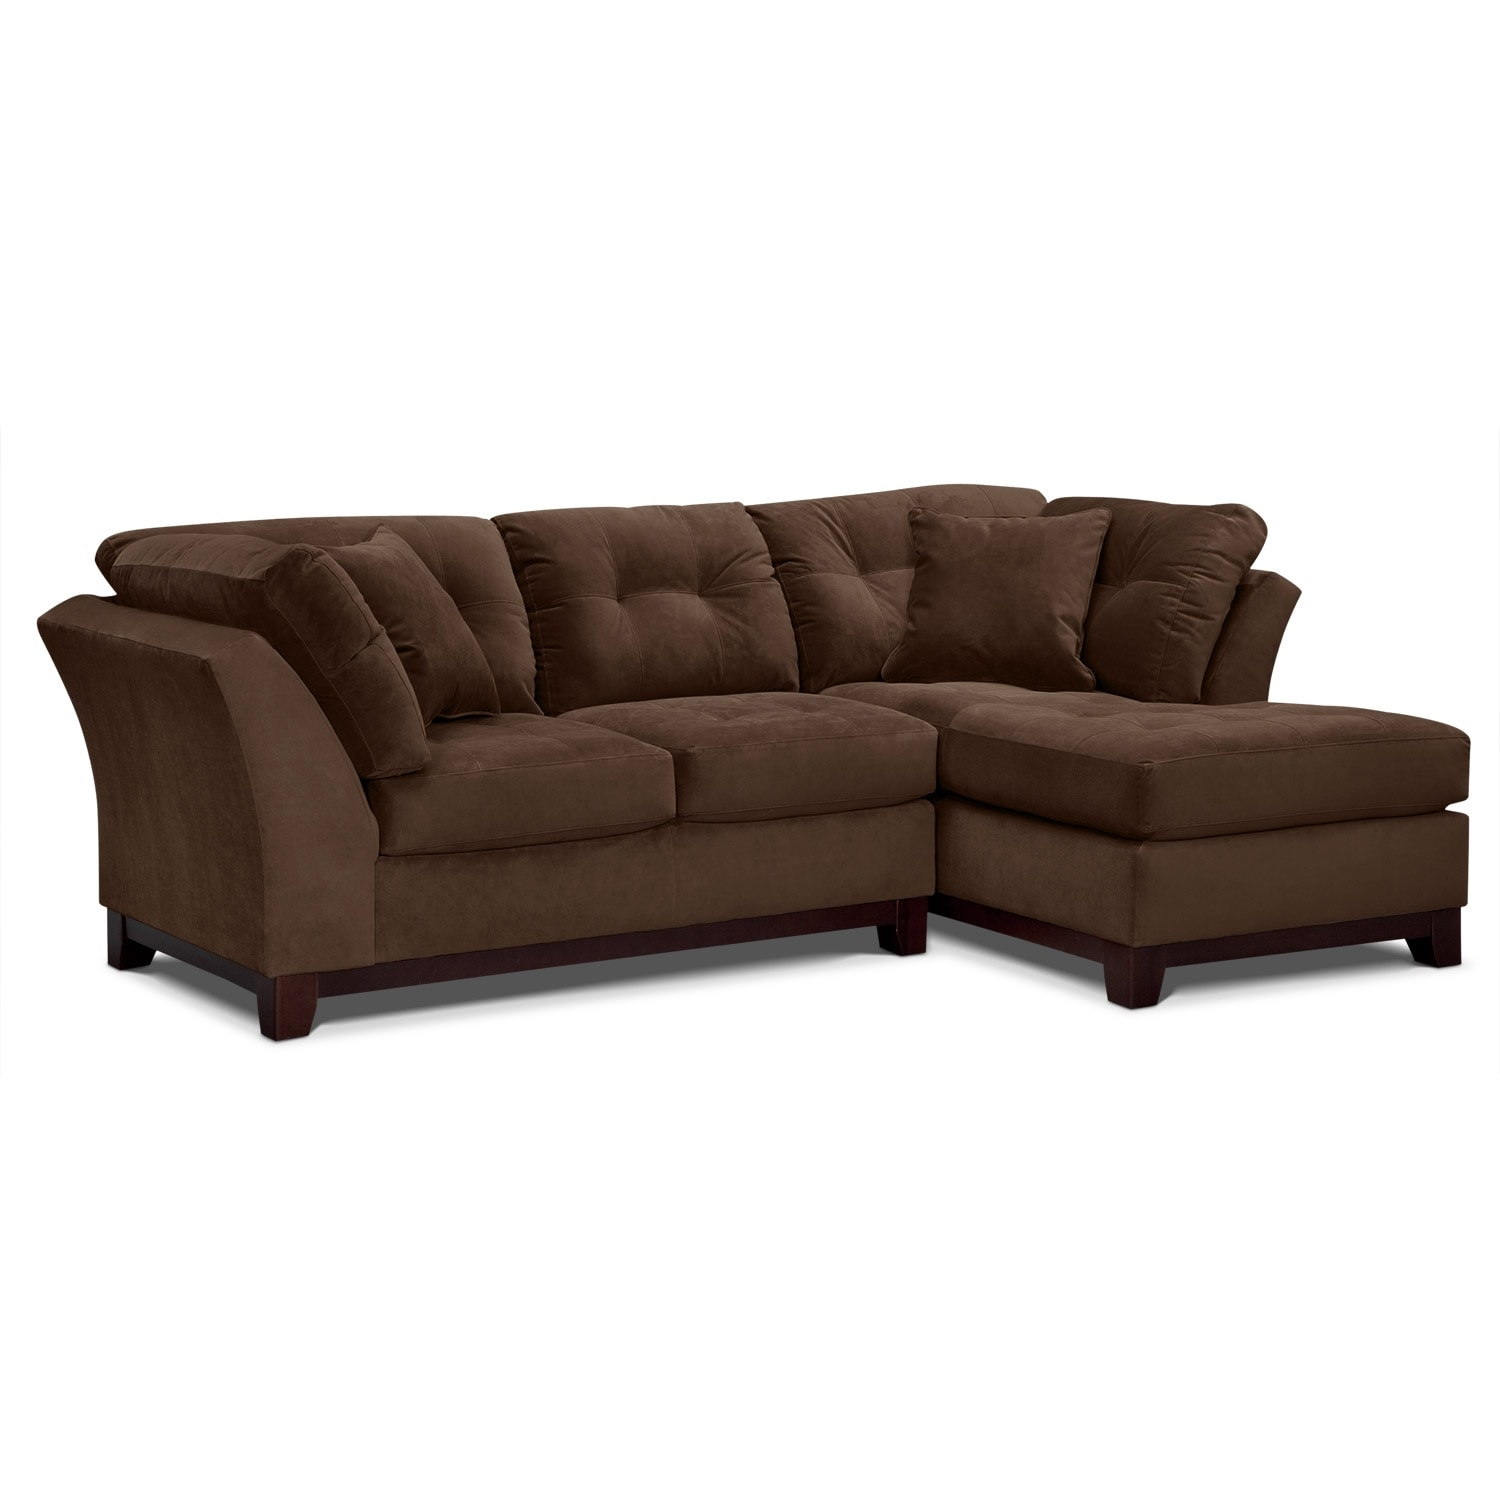 Solace 2-Piece Right-Facing Chaise Sectional - Chocolate